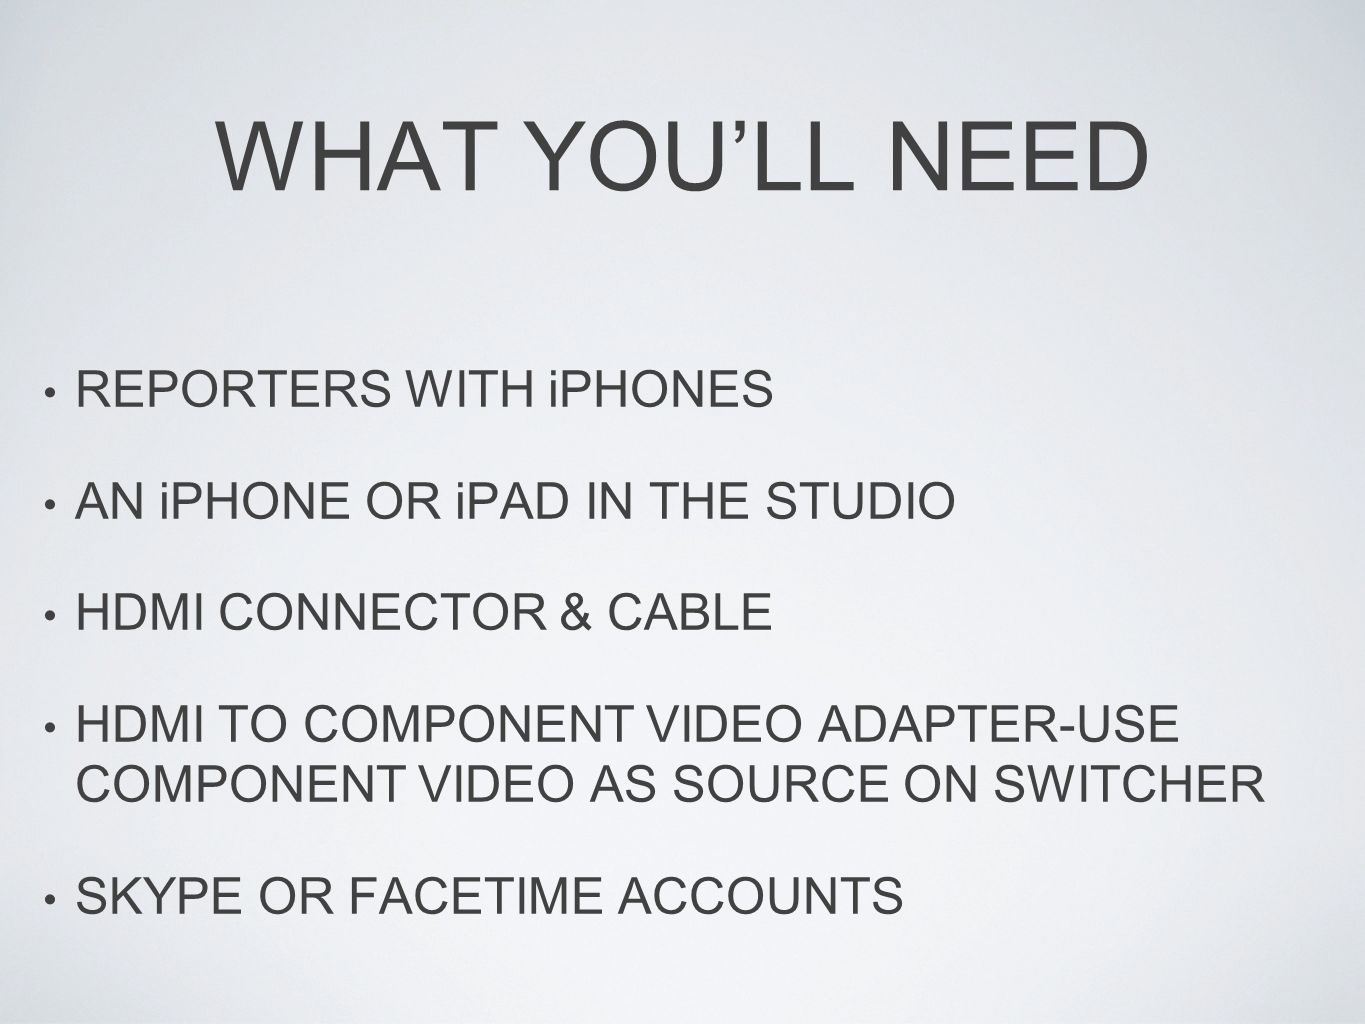 WHAT YOULL NEED REPORTERS WITH iPHONES AN iPHONE OR iPAD IN THE STUDIO HDMI CONNECTOR & CABLE HDMI TO COMPONENT VIDEO ADAPTER-USE COMPONENT VIDEO AS SOURCE ON SWITCHER SKYPE OR FACETIME ACCOUNTS